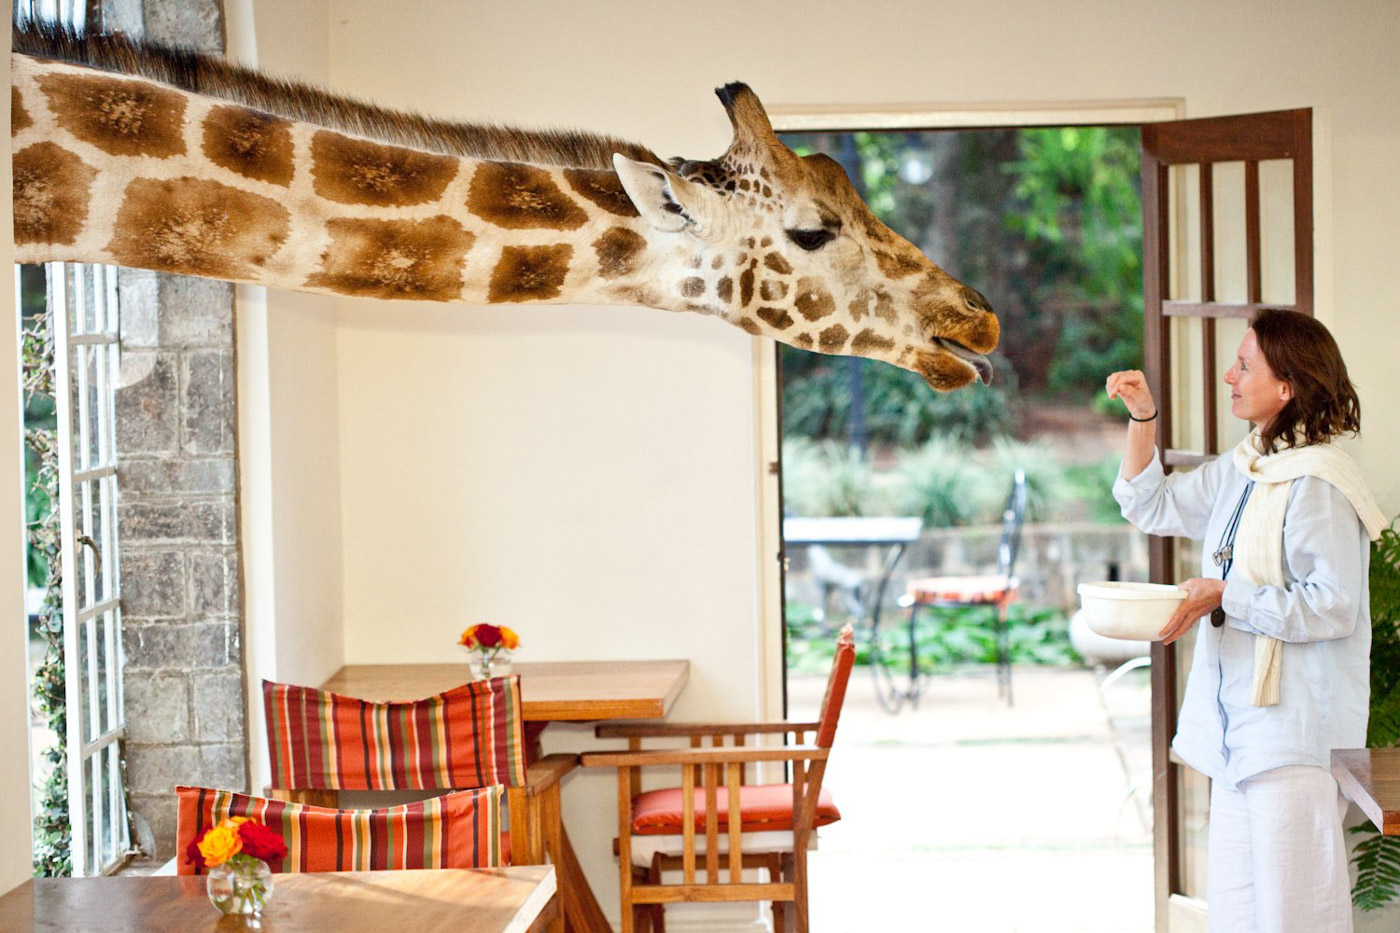 Giraffe Manor_10.jpg